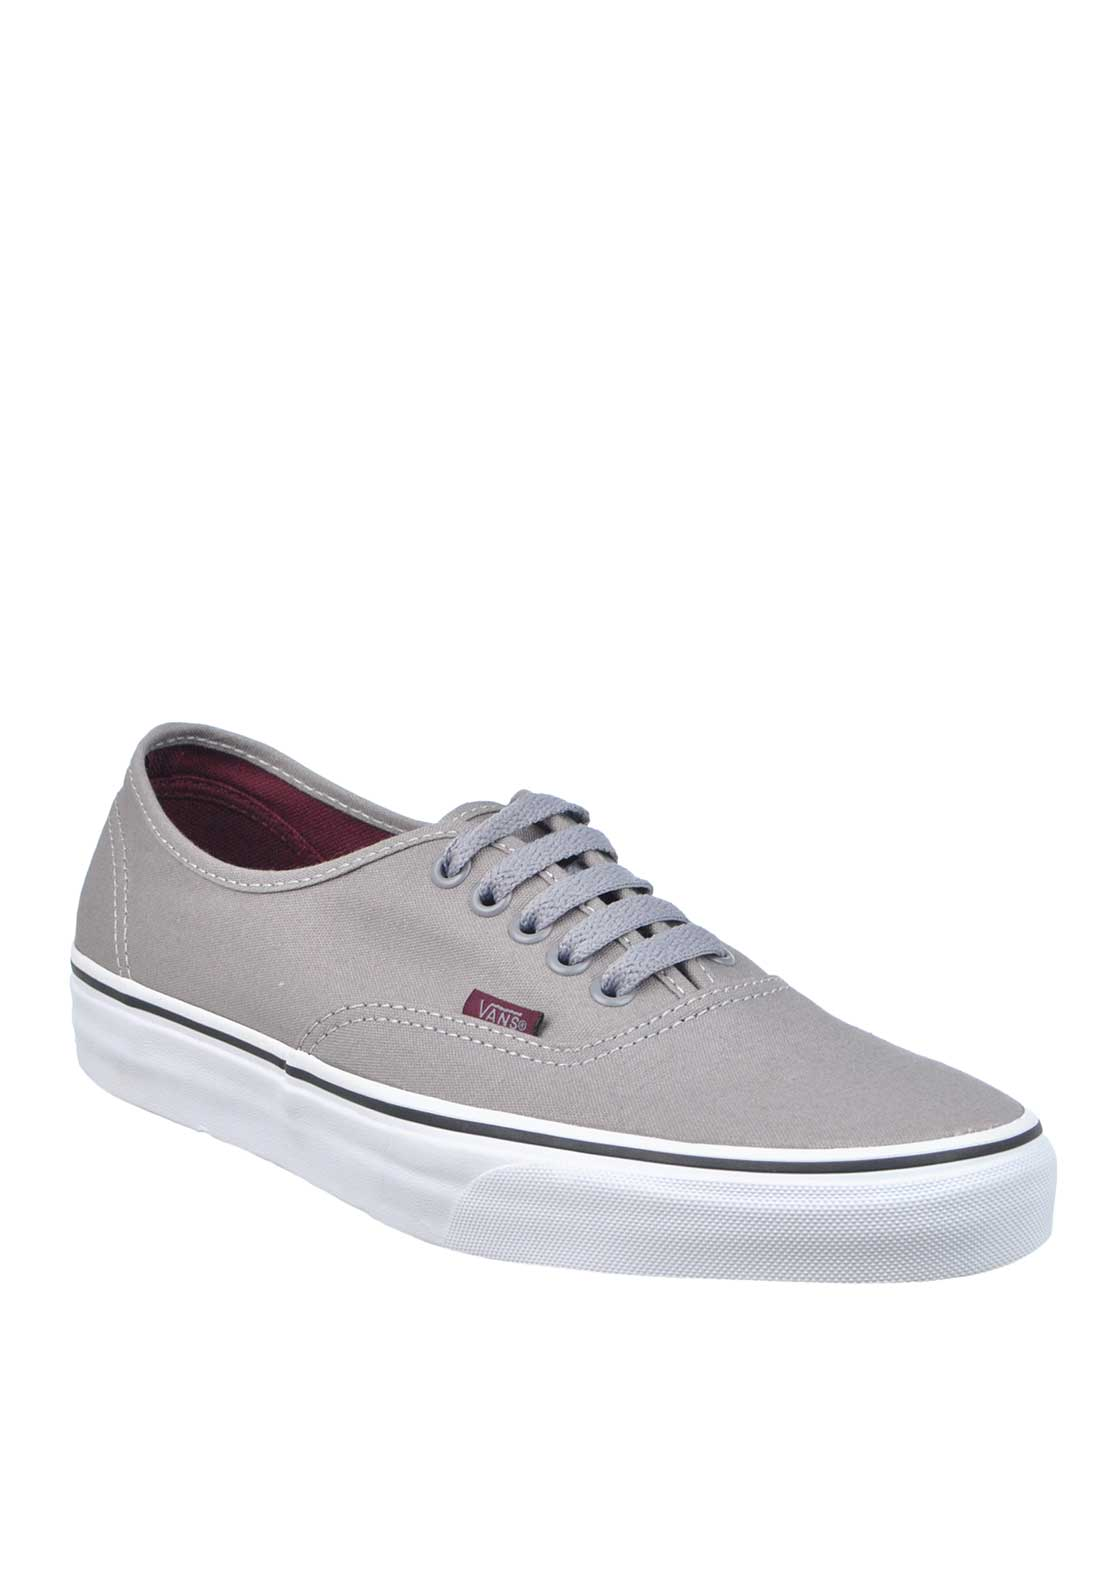 Vans Mens Authentic Lace Up Trainers, Grey